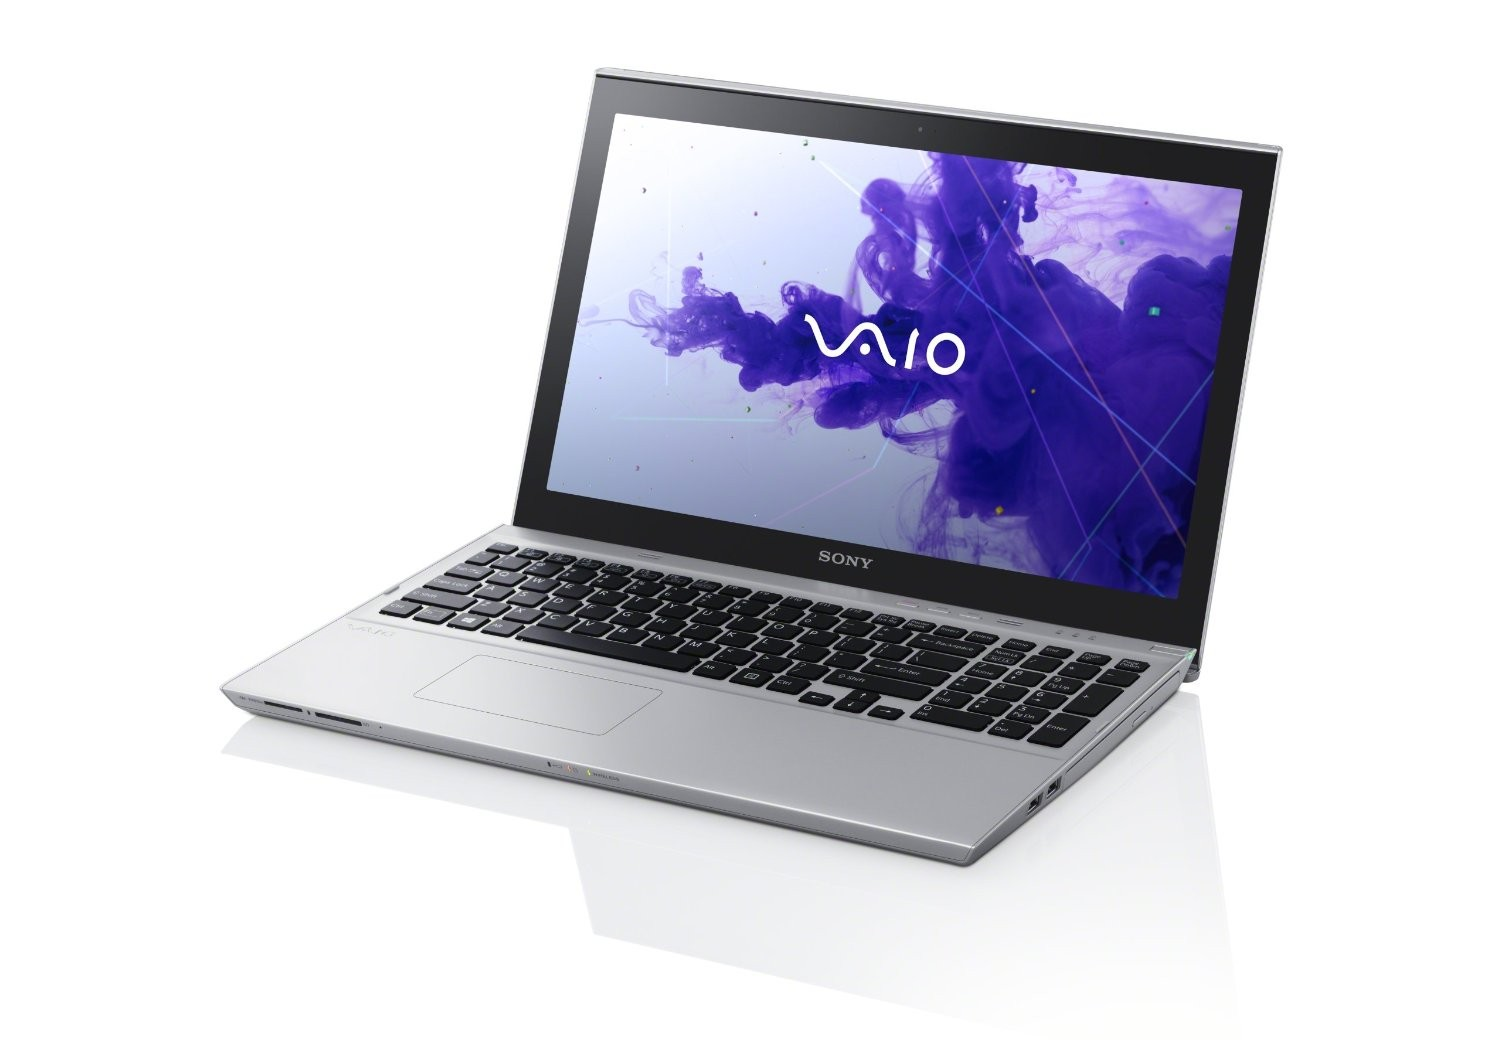 tonpc vente sony vaio series svt 15 ultrabook tactile core i5 3337u 1 8hz 4g 24g ssd 500g hdd. Black Bedroom Furniture Sets. Home Design Ideas